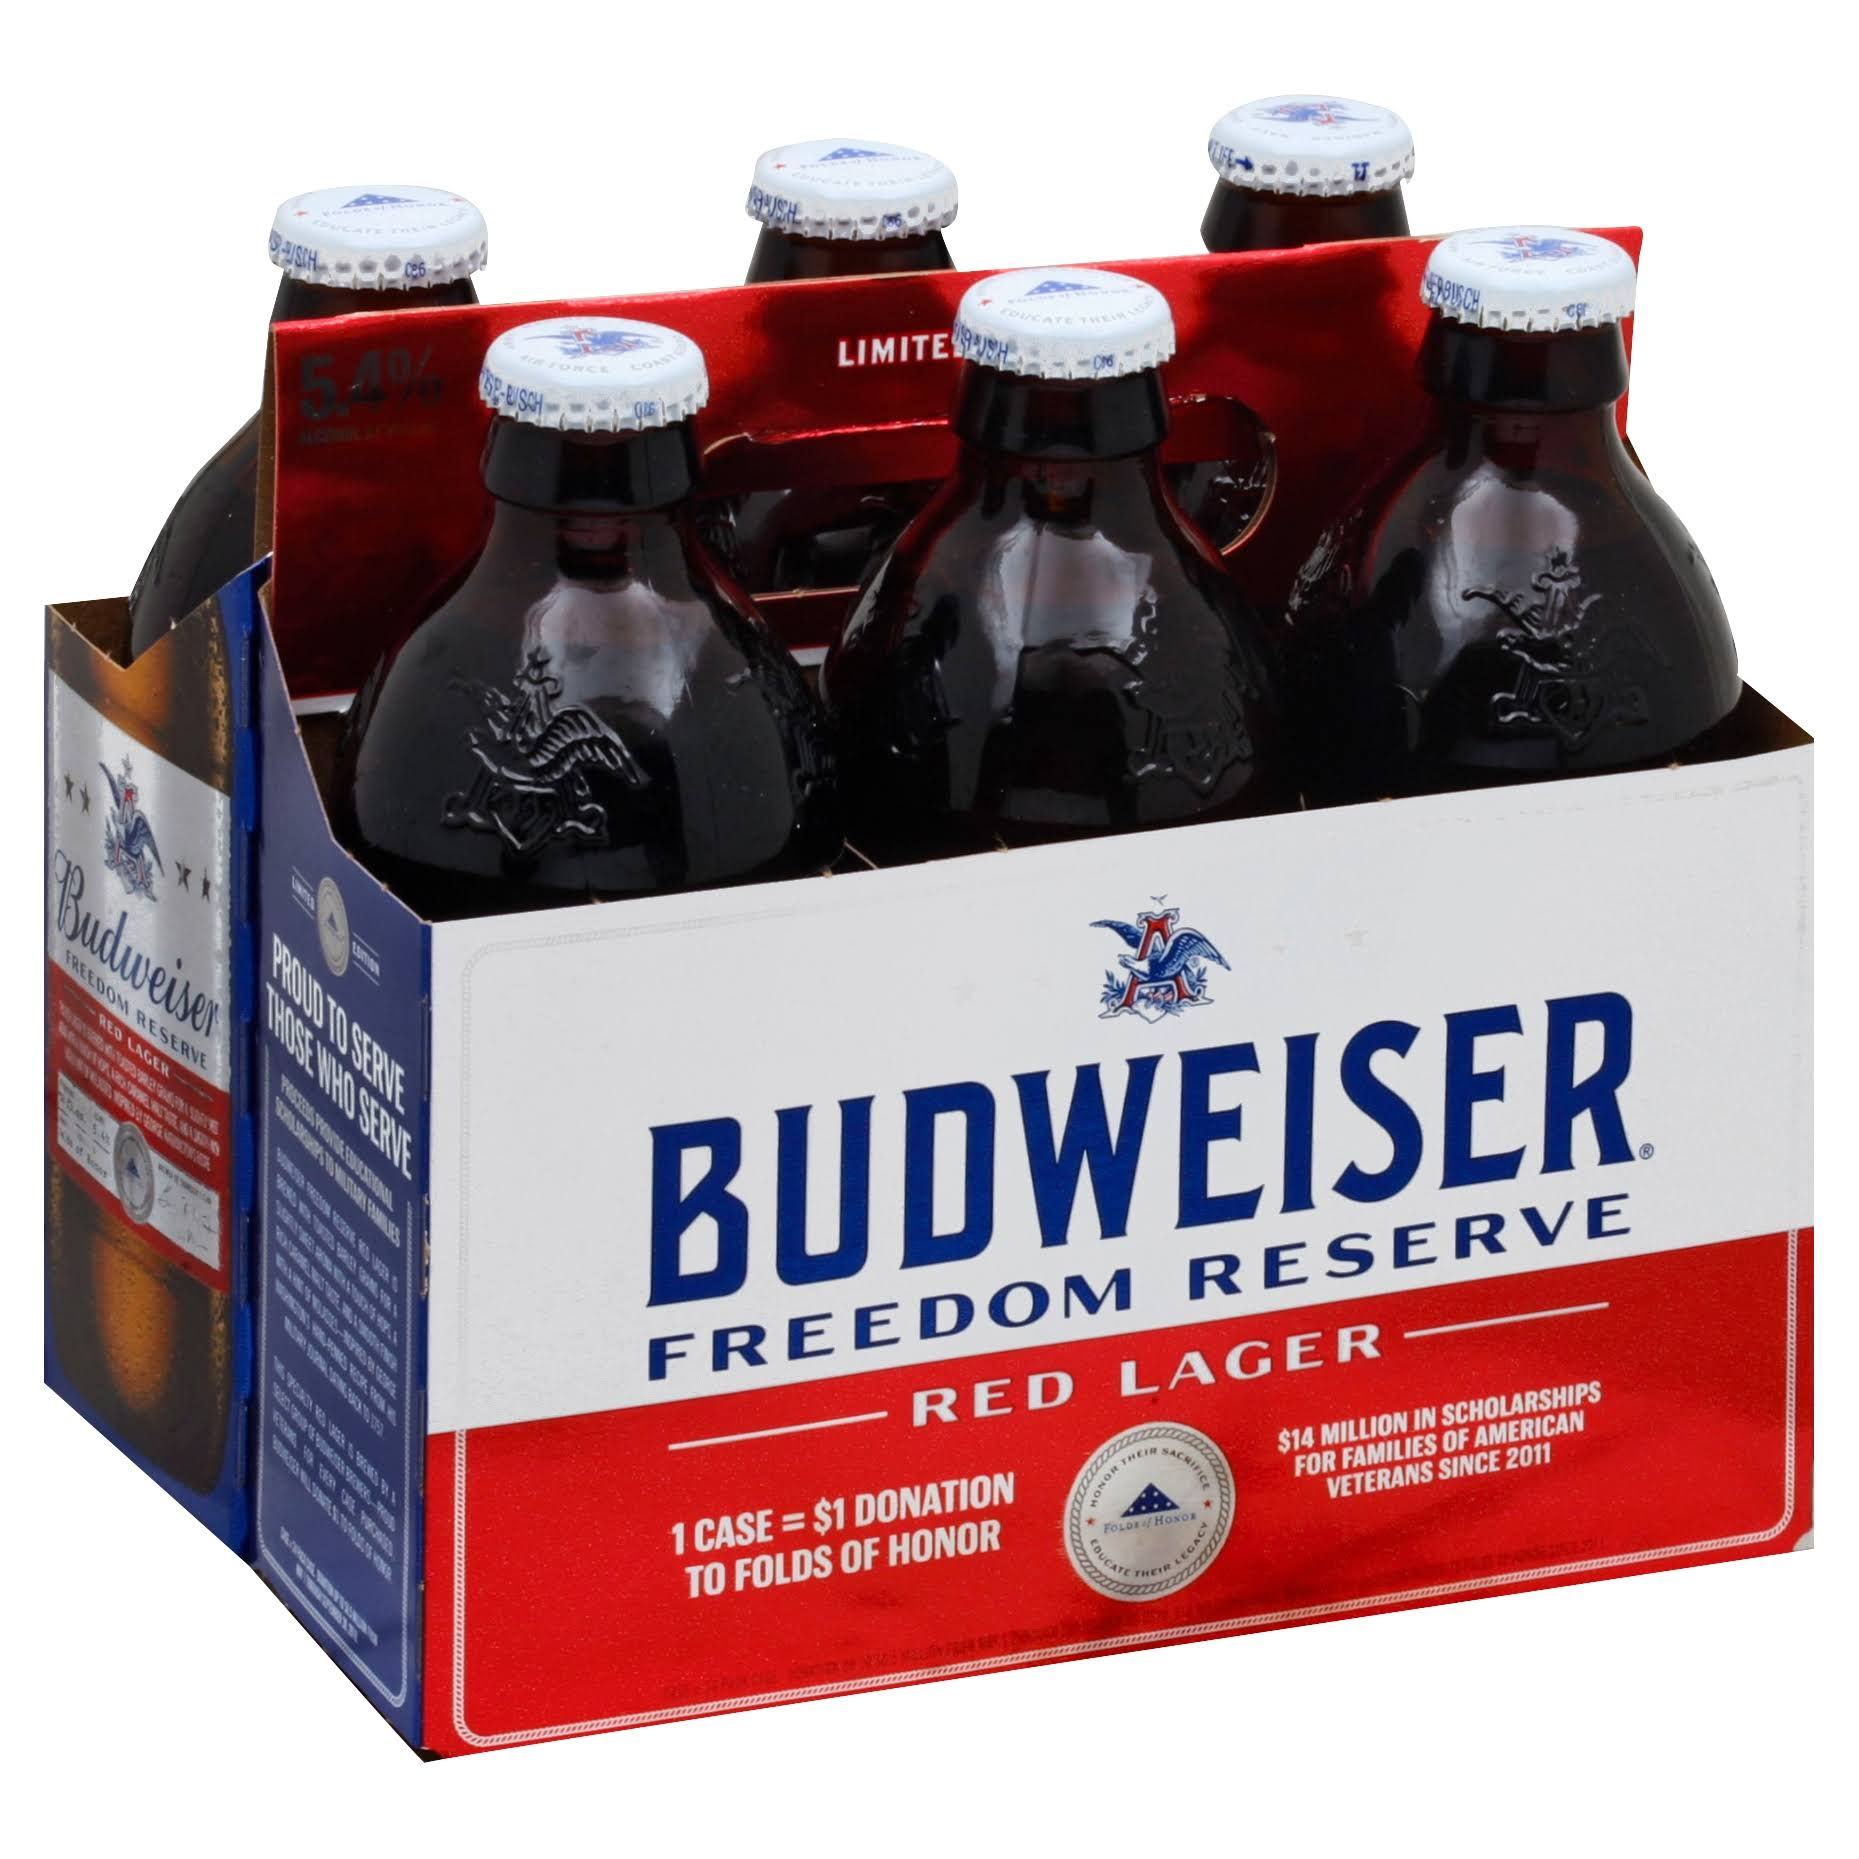 Budweiser Beer, Red Lager, Freedom Reserve - 6 pack, 12 fl oz bottles